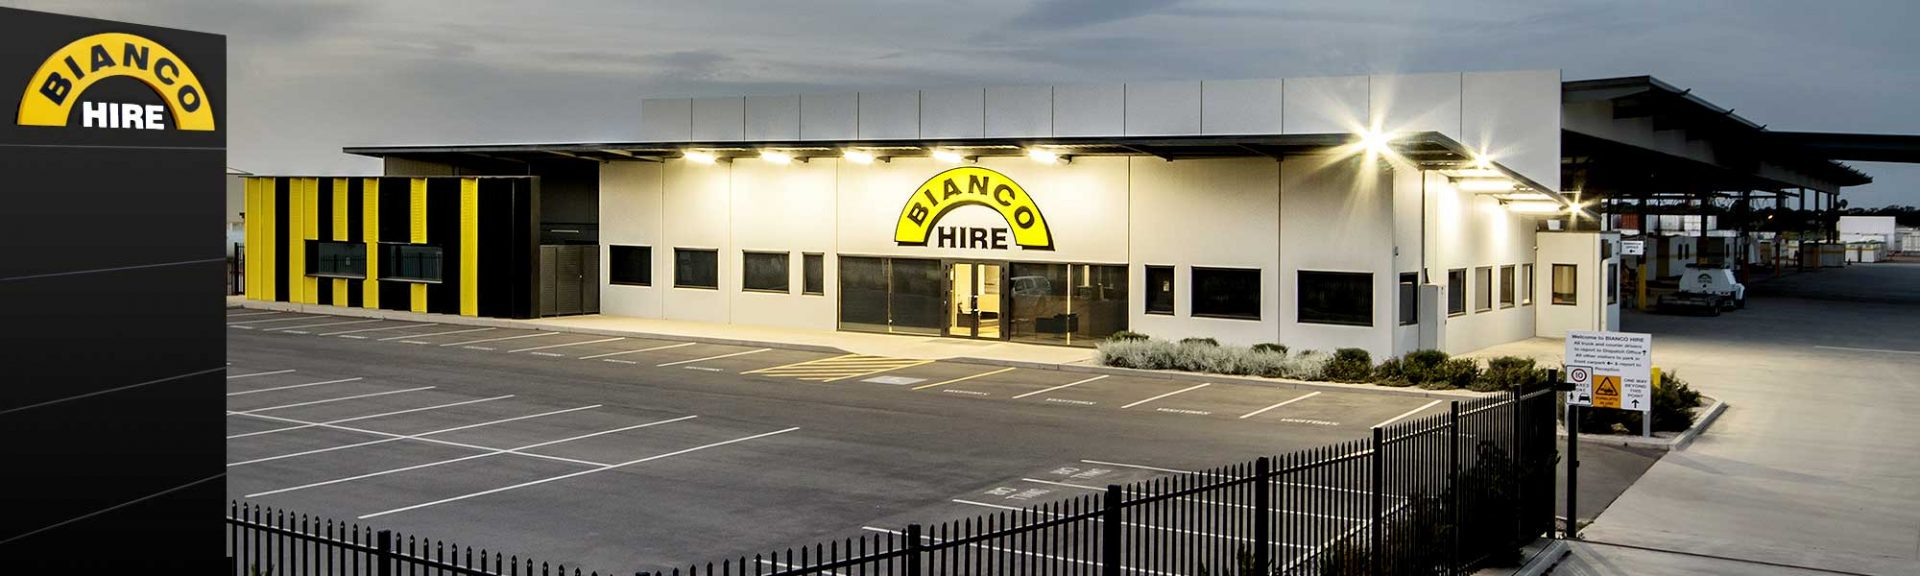 Bianco Hire Office